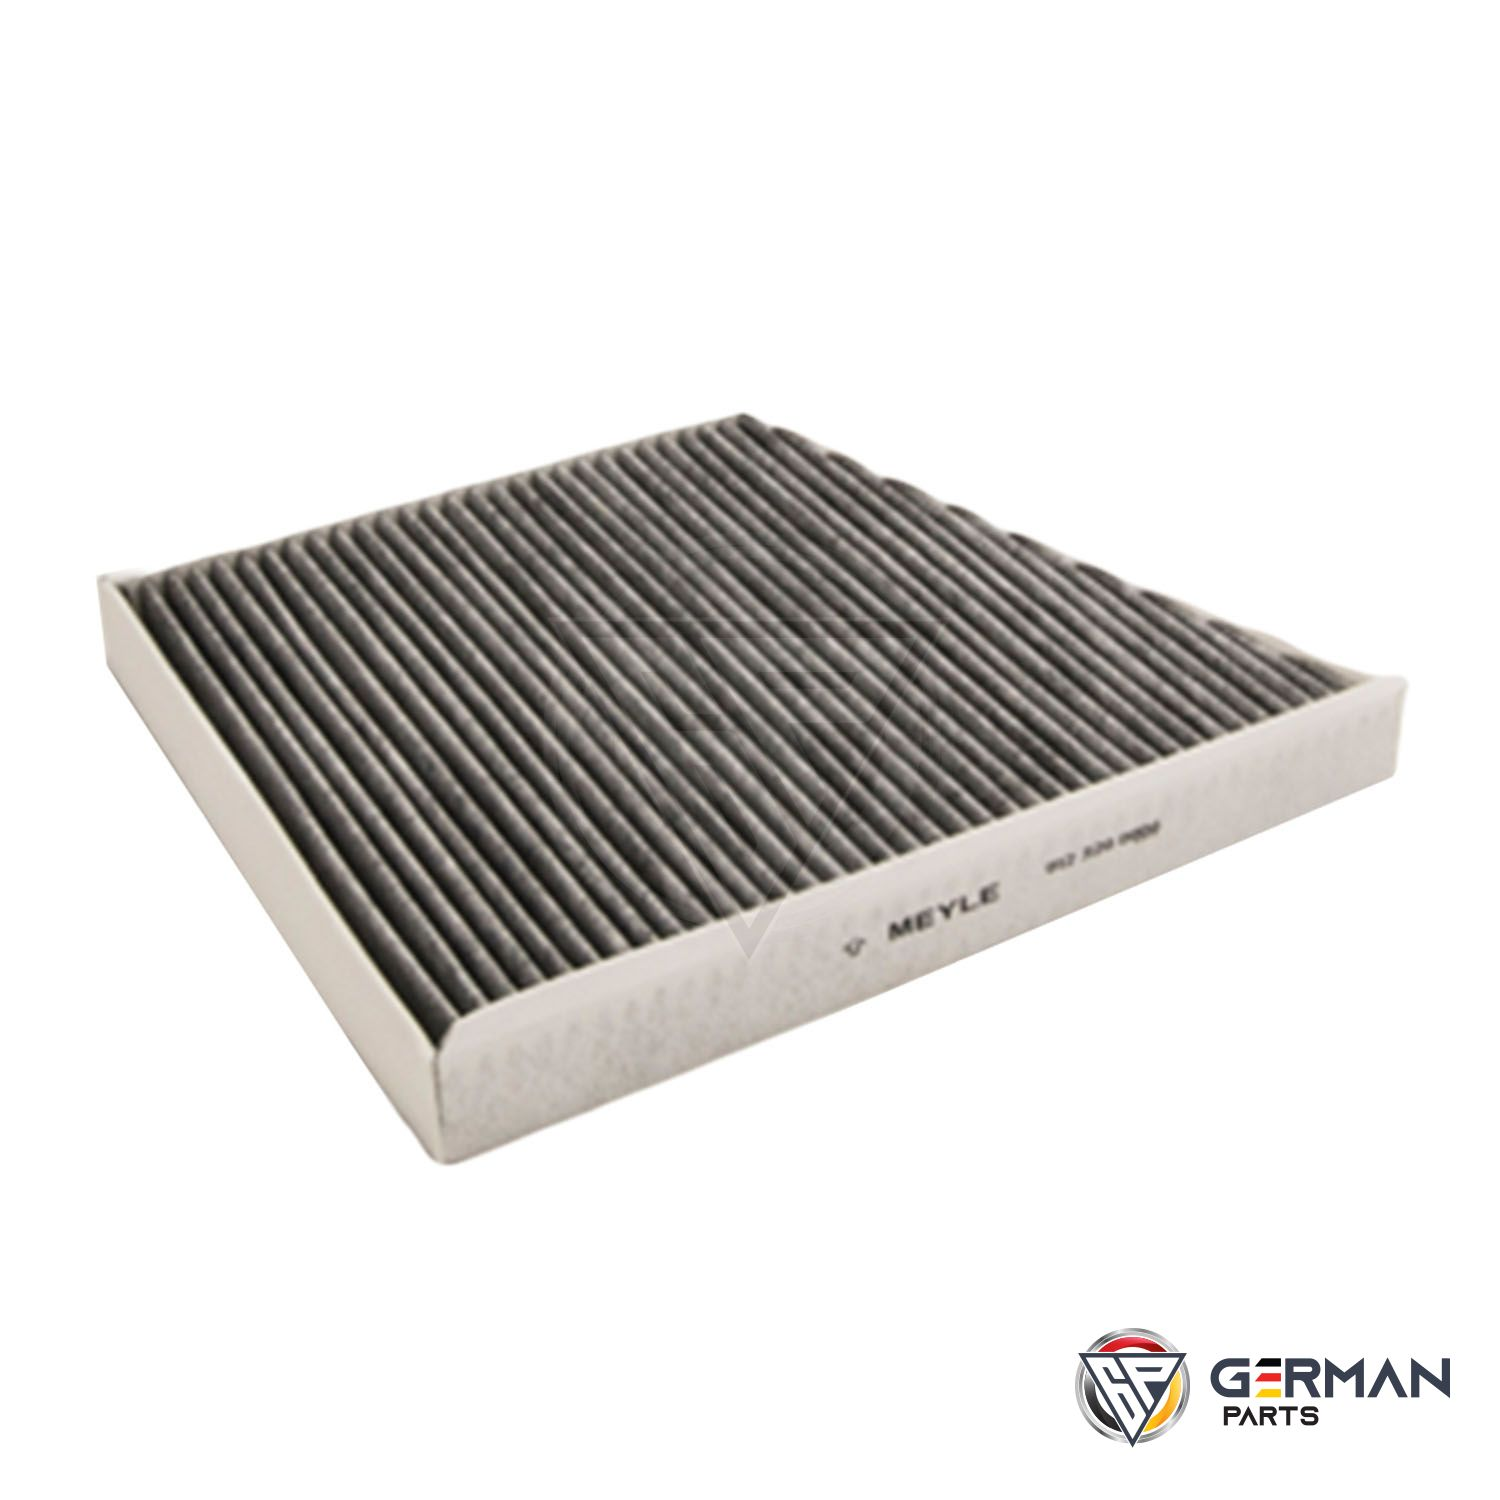 Buy Meyle Ac Dust Filter 2118300018 - German Parts